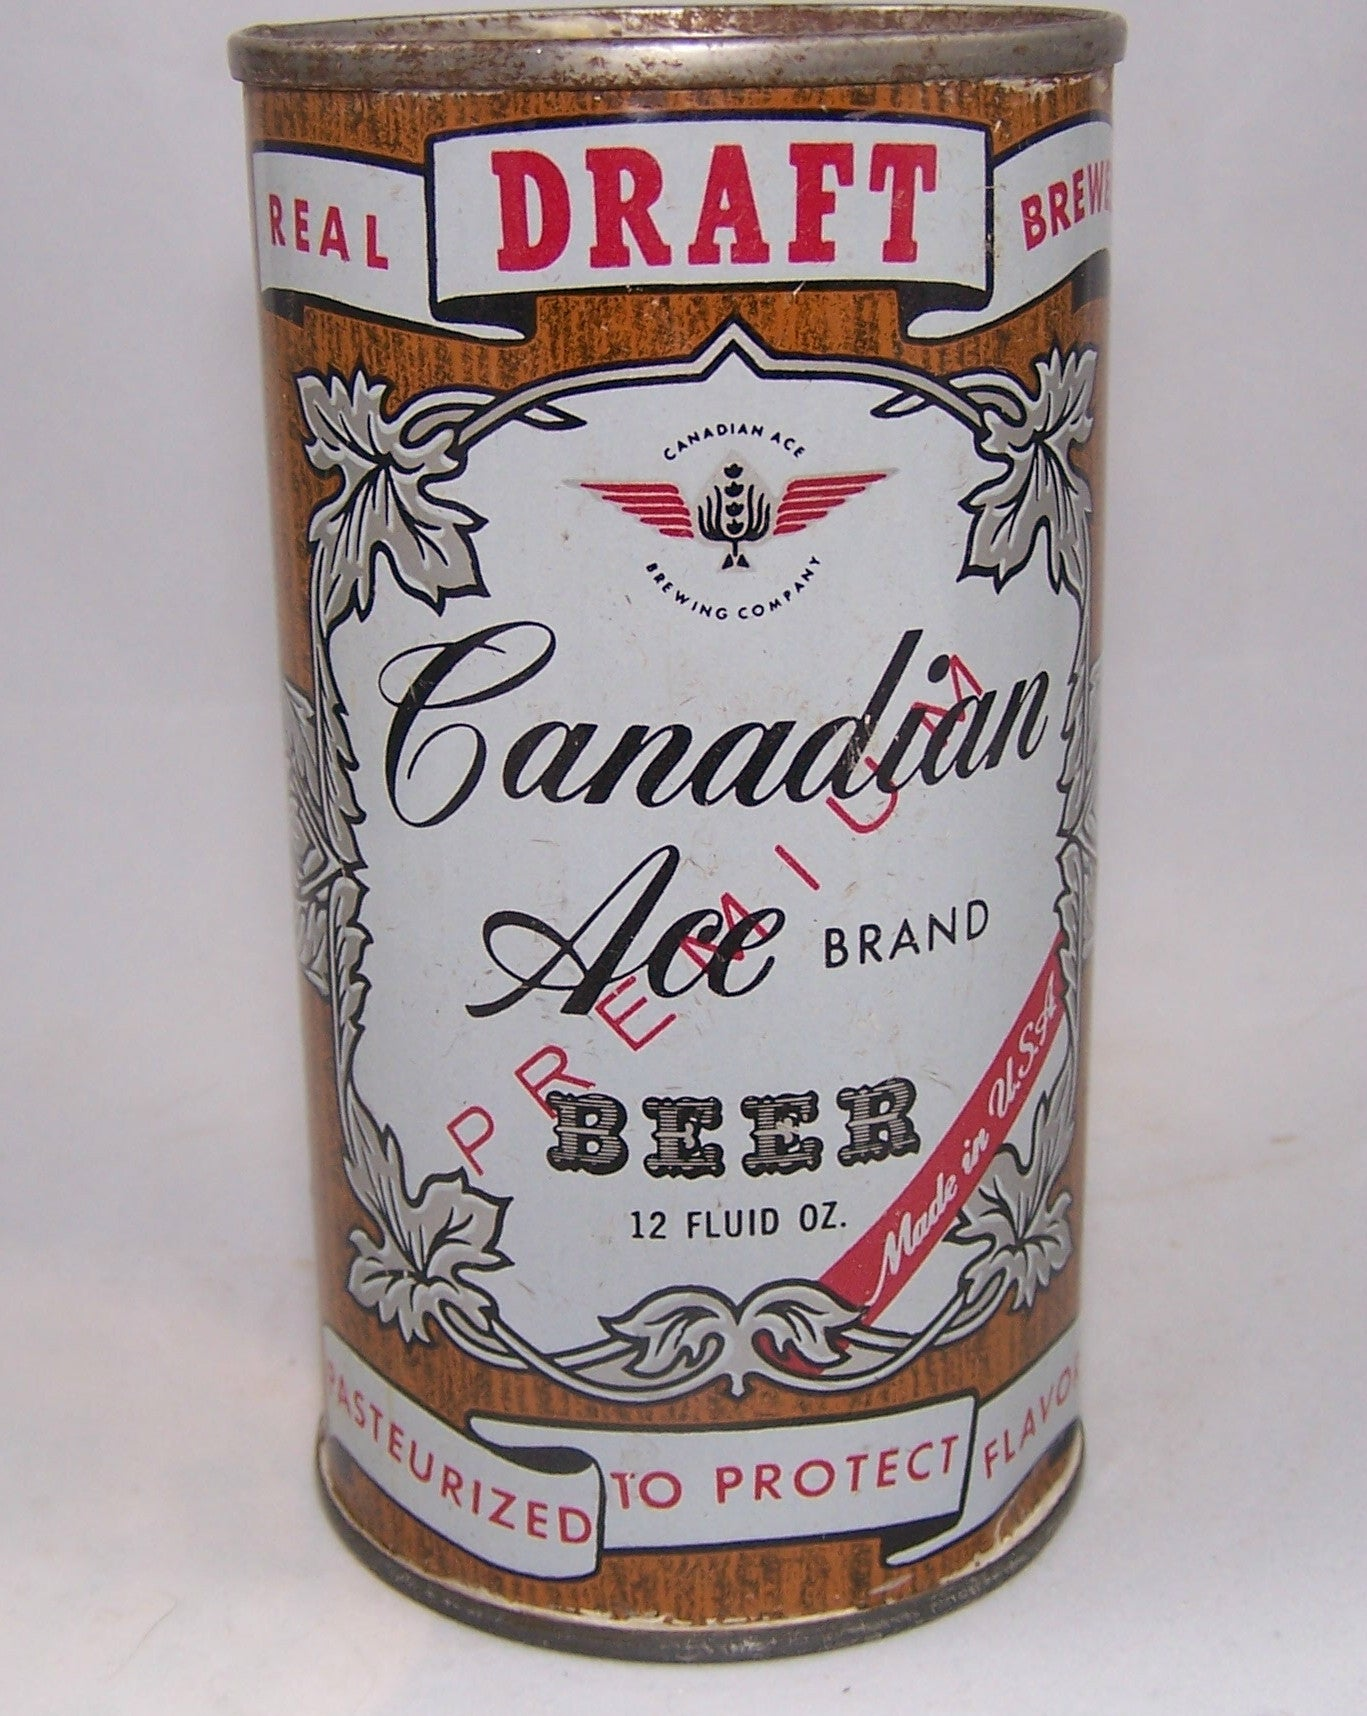 Canadian Ace Draft Beer (Enamel) USBC 48-18, Grade 1/1+Sold 10/6/15